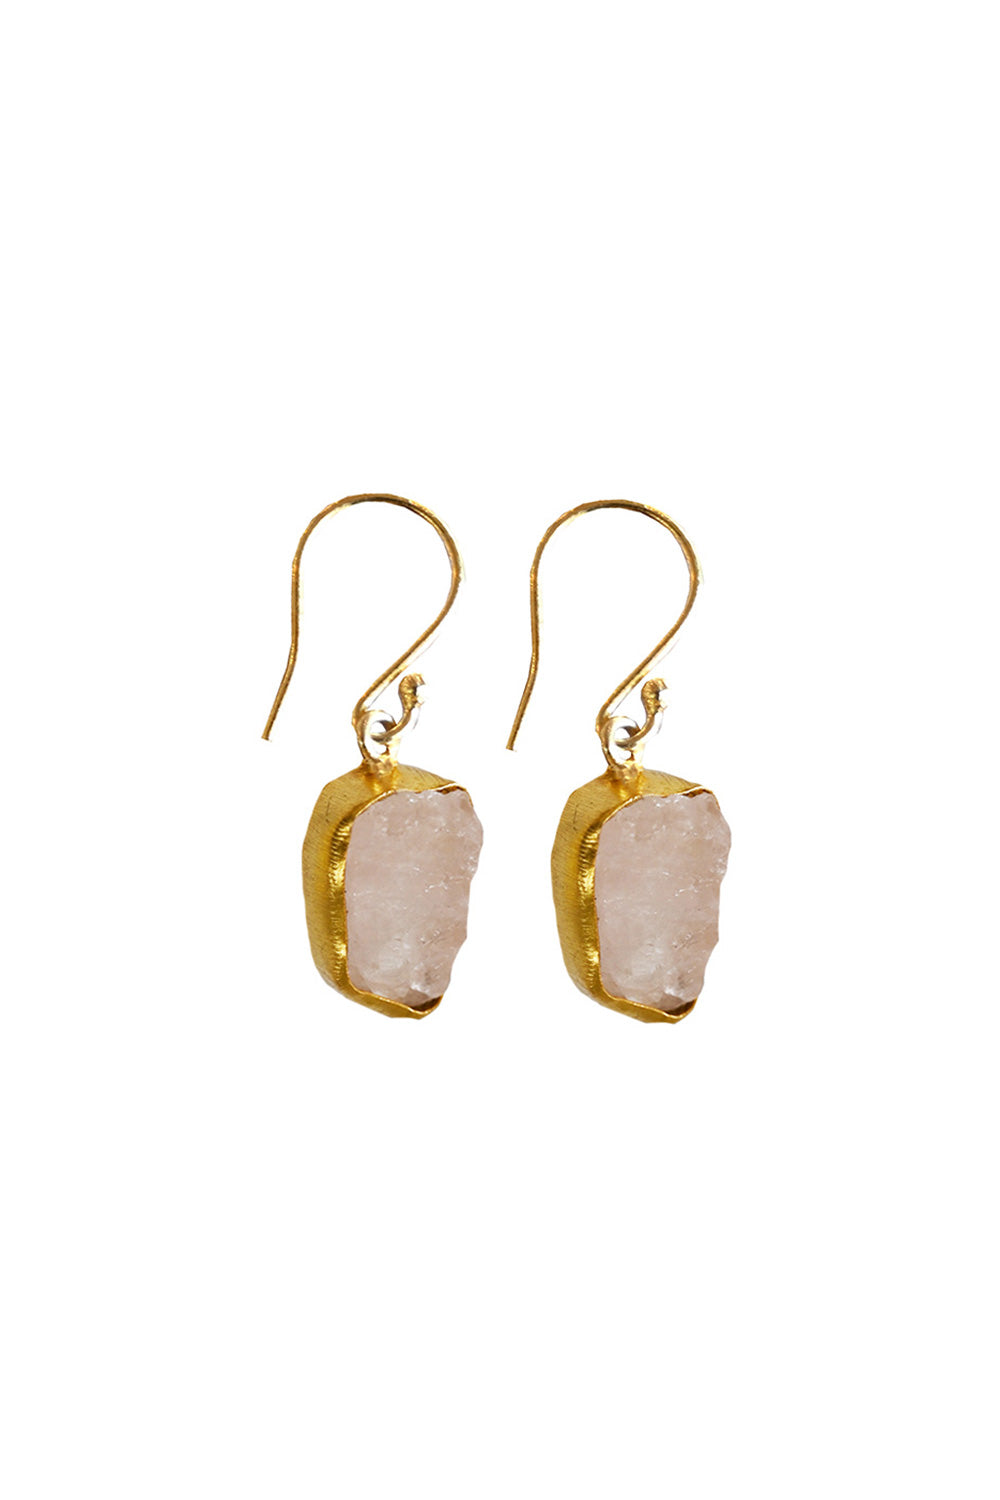 Neylan Turkish Earrings - Kabana Shop